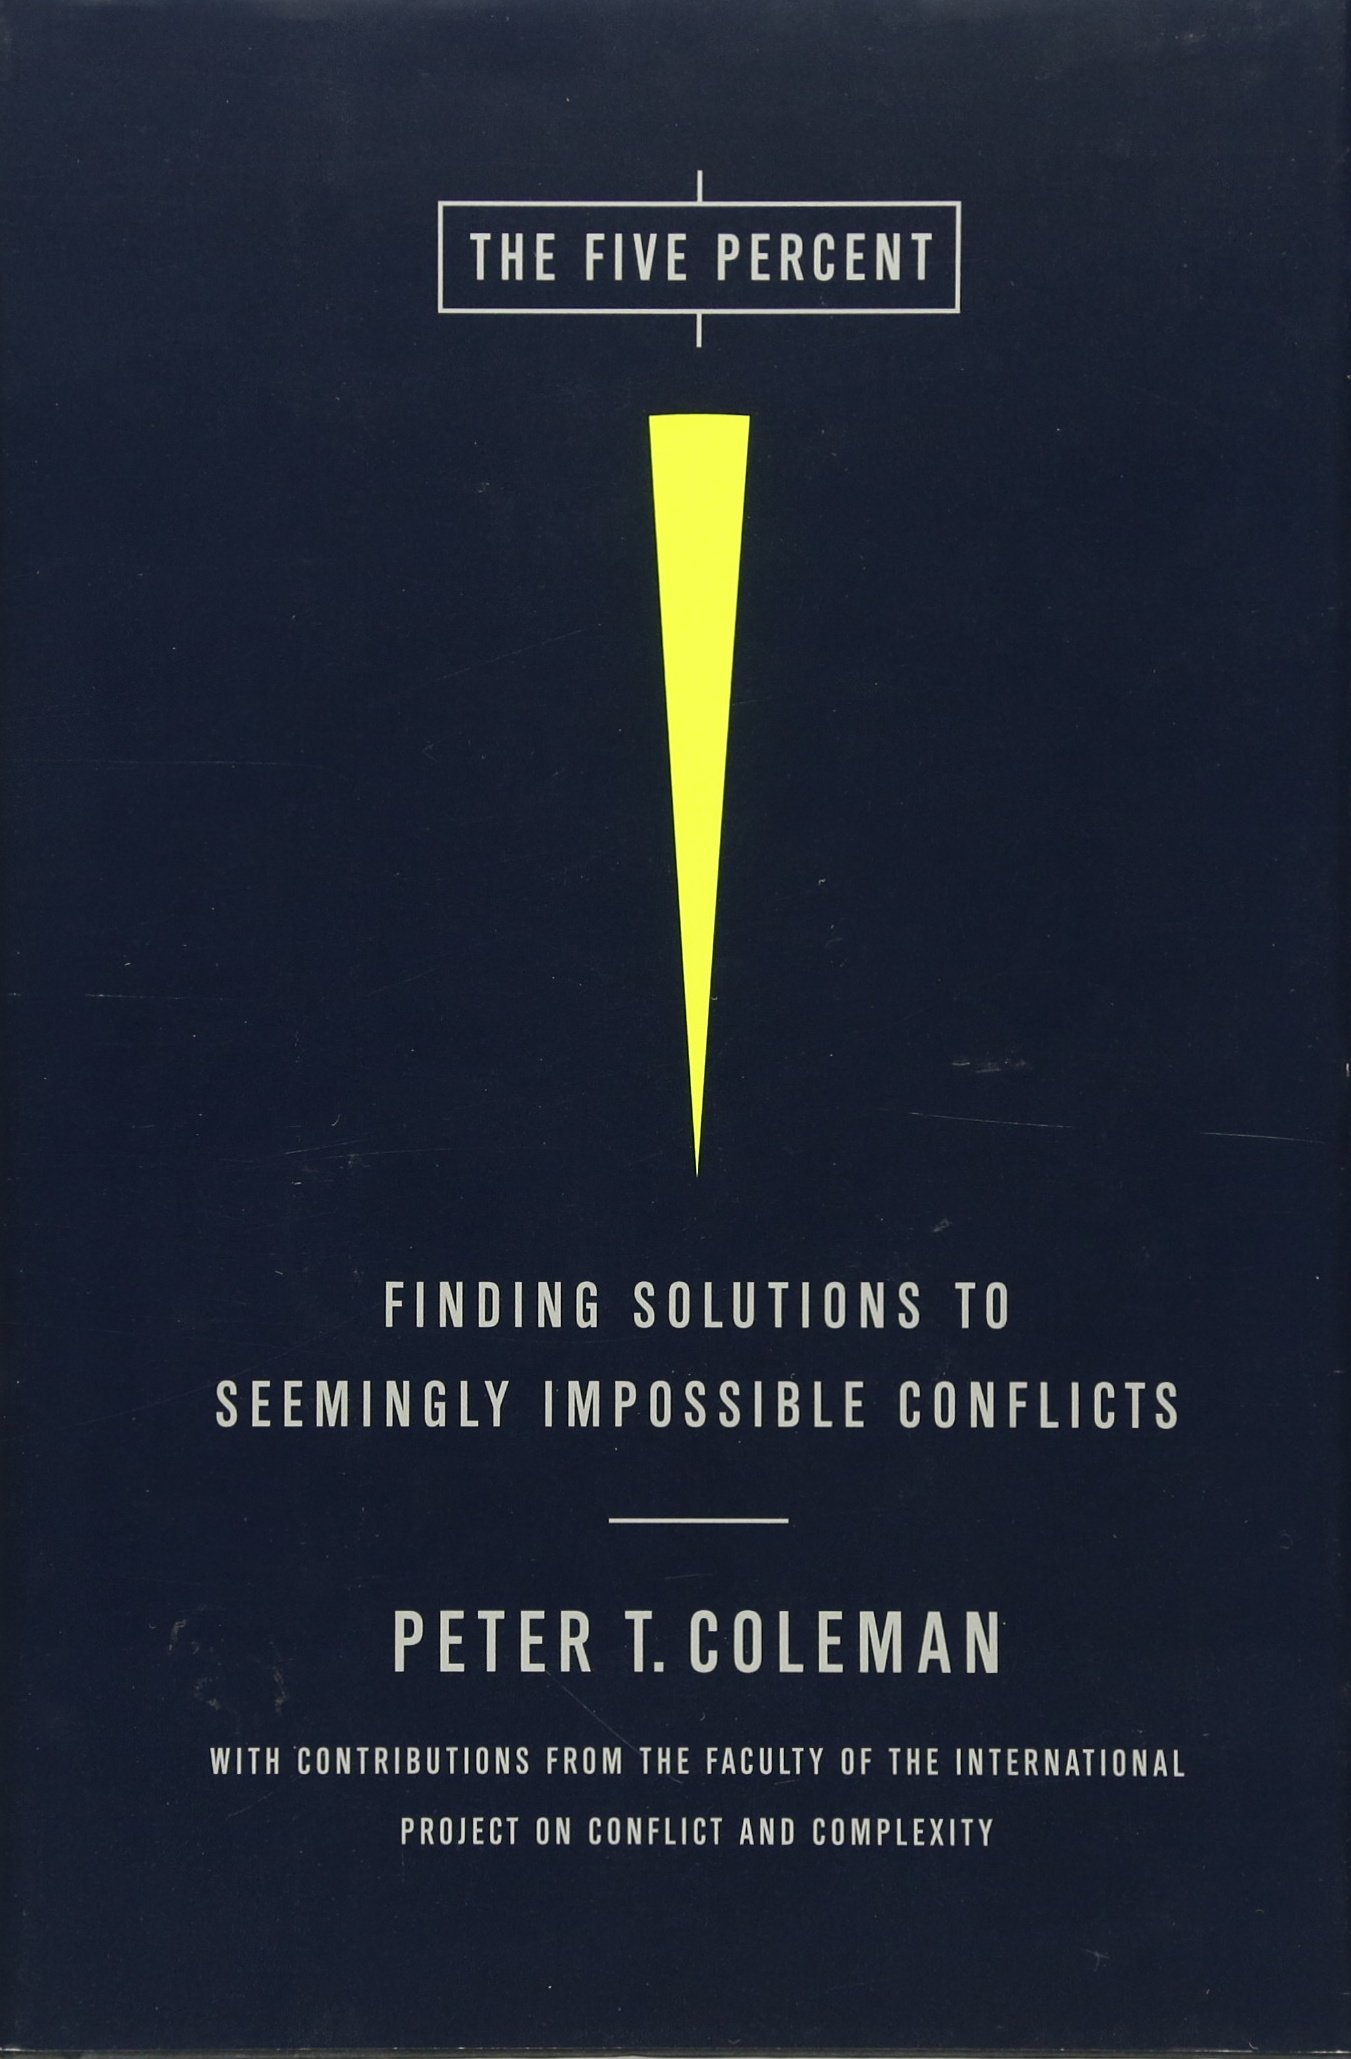 The Five Percent: Finding Solutions to Seemingly Impossible Conflicts